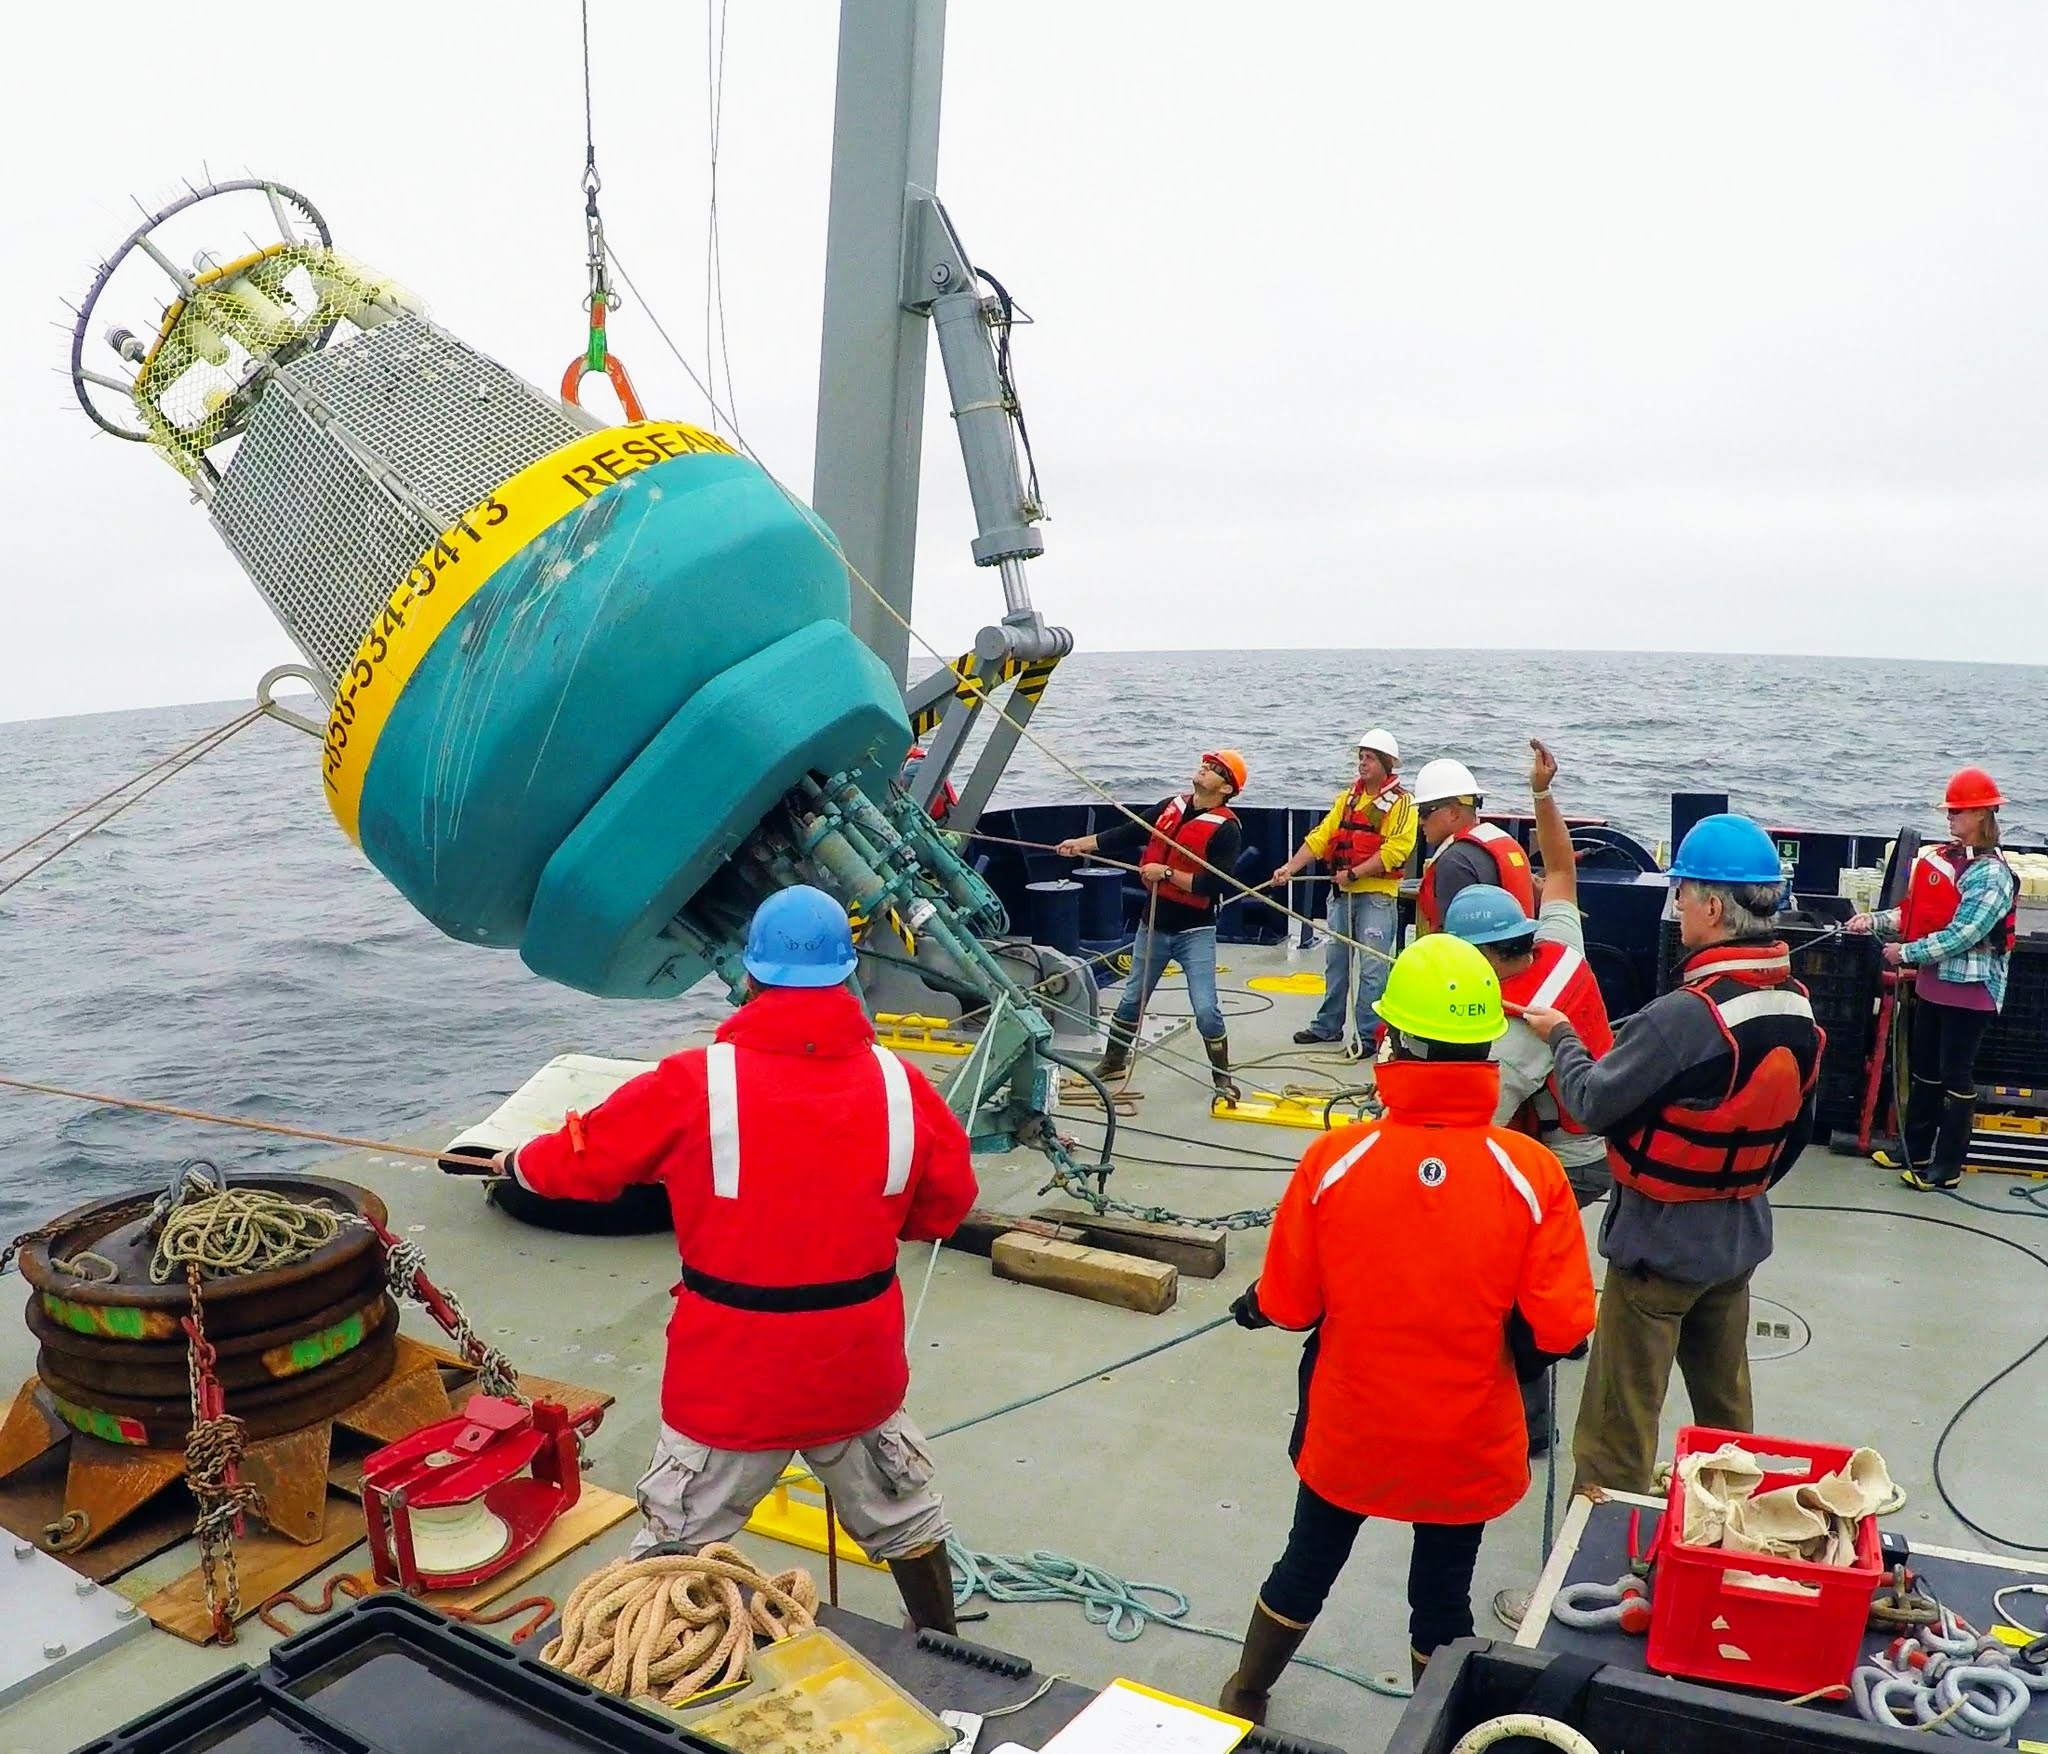 CalCOFI crew lowering a buoy into the ocean